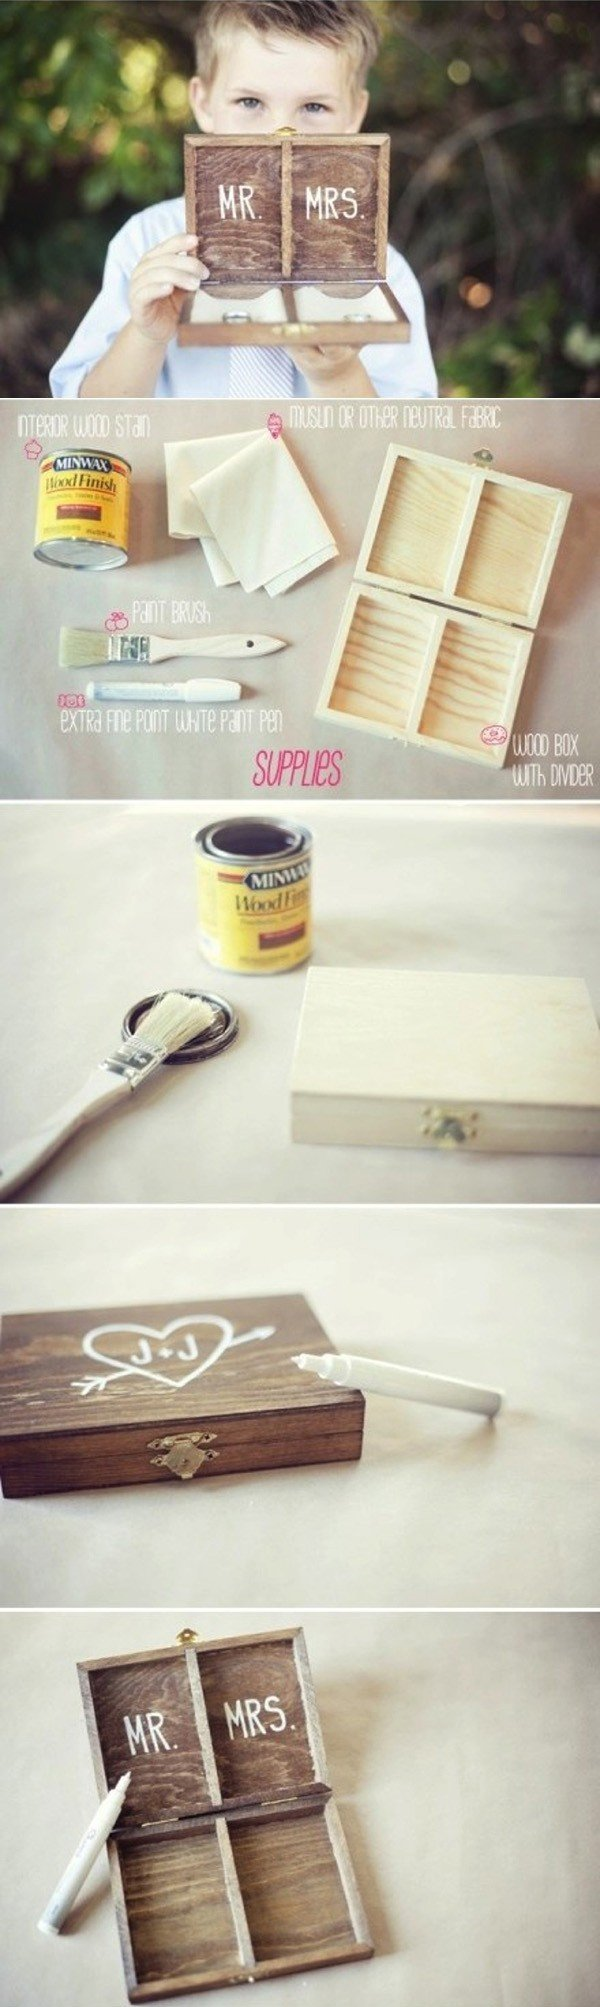 diy ring bear box wedding ideas